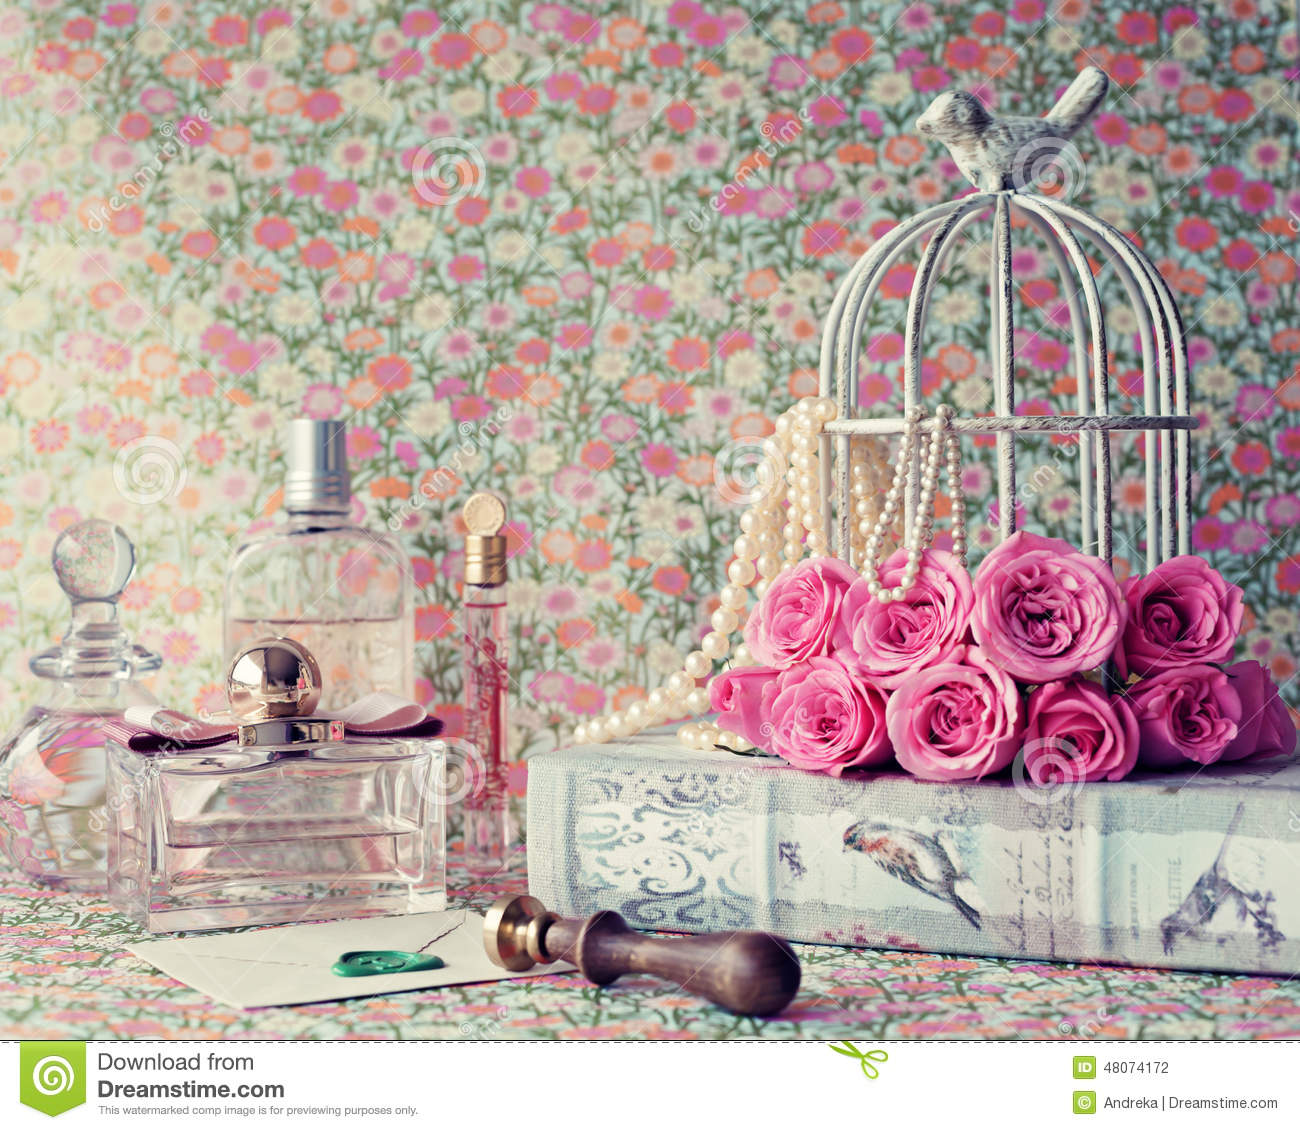 Https Www Dreamstime Com Stock Photo Roses Over Vintage Book Perfume Bottle Lacre Seal Image48074172